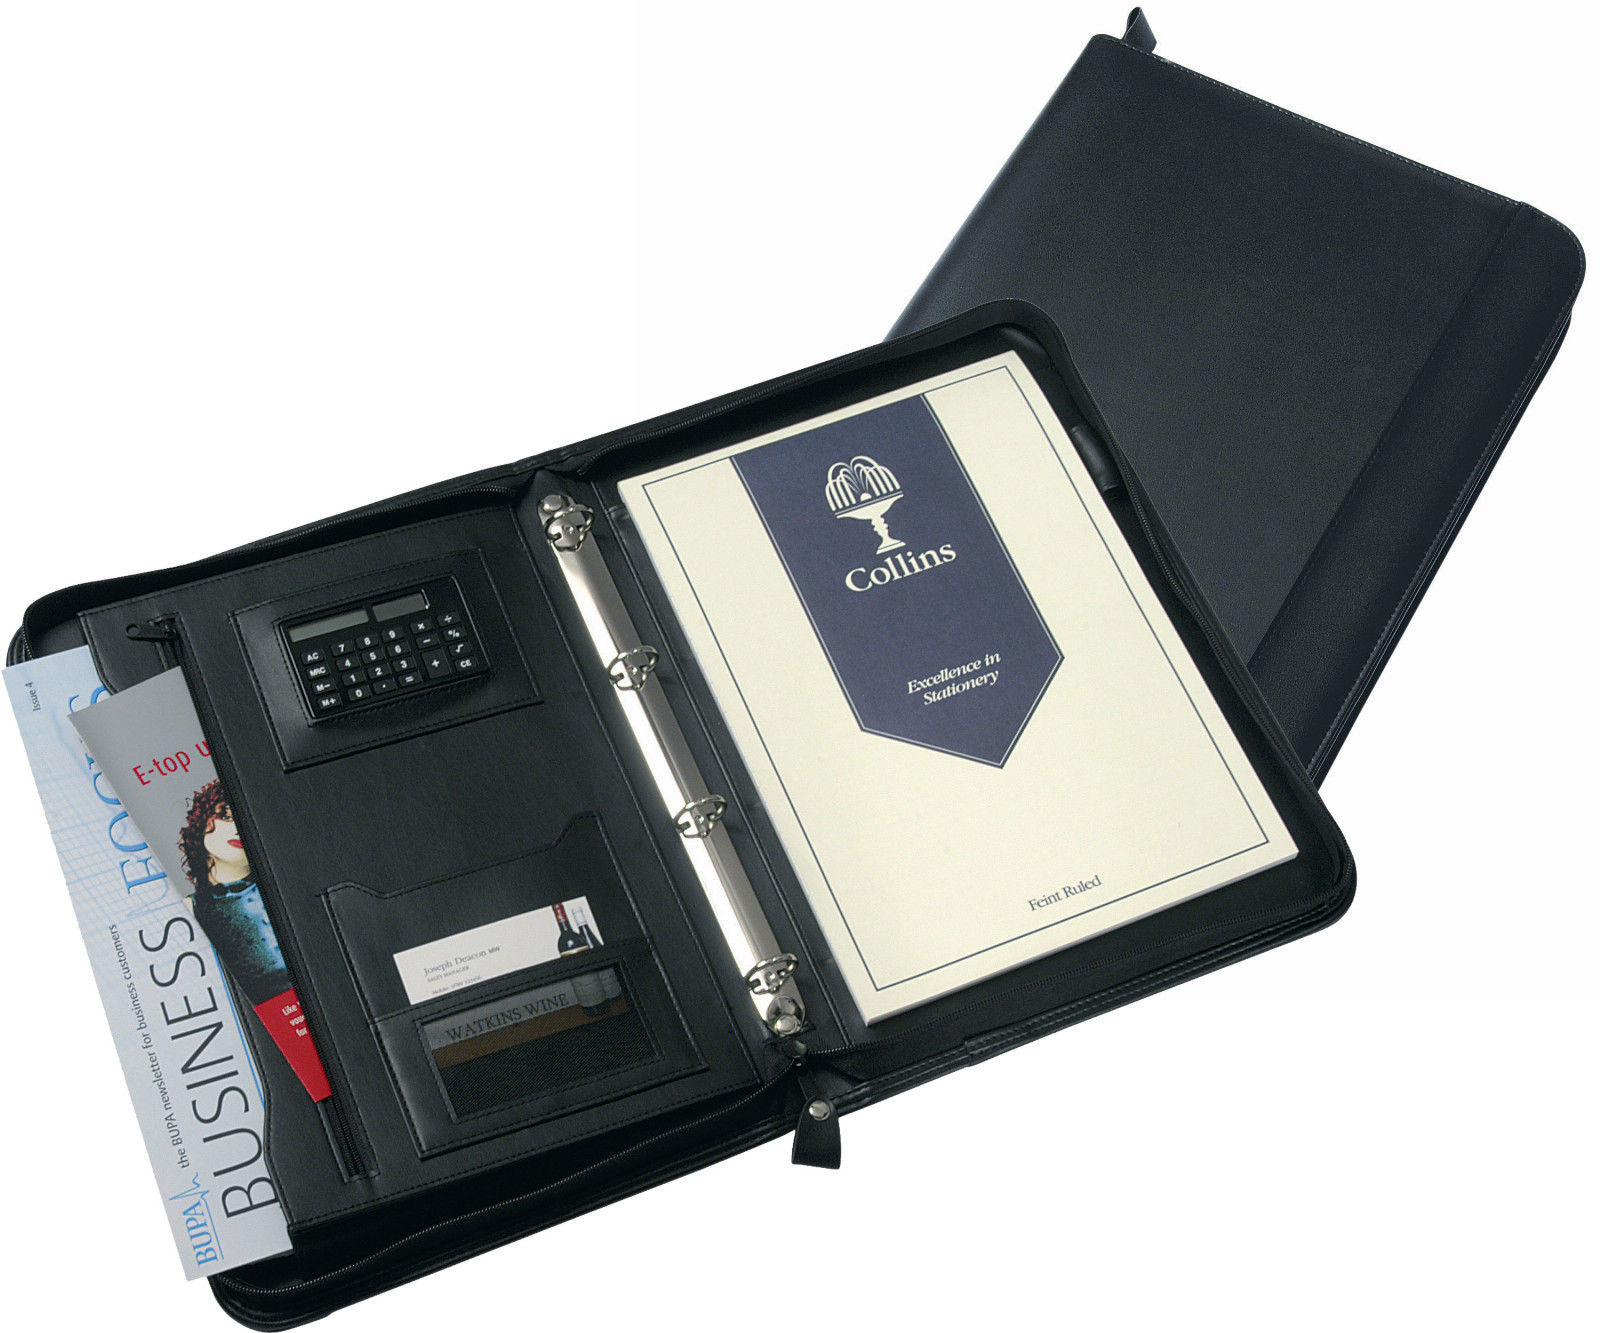 Potfolios Collins A4 Conference Ring Binder with Calculator Zipped Leather Look Black 5090